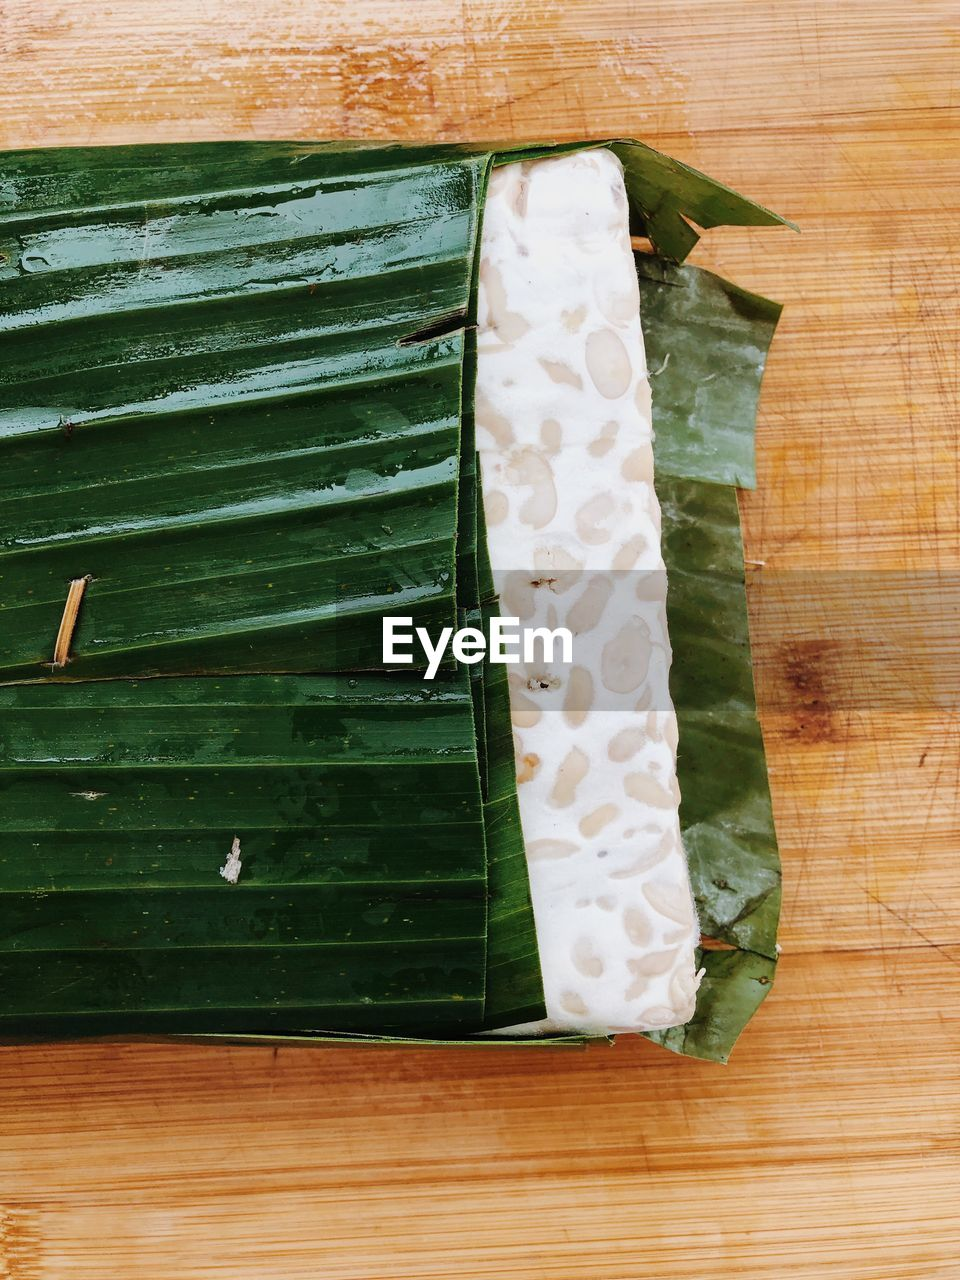 leaf, green color, no people, plant part, food, wood - material, food and drink, directly above, freshness, still life, indoors, close-up, high angle view, white color, banana leaf, table, nature, plant, leaves, flooring